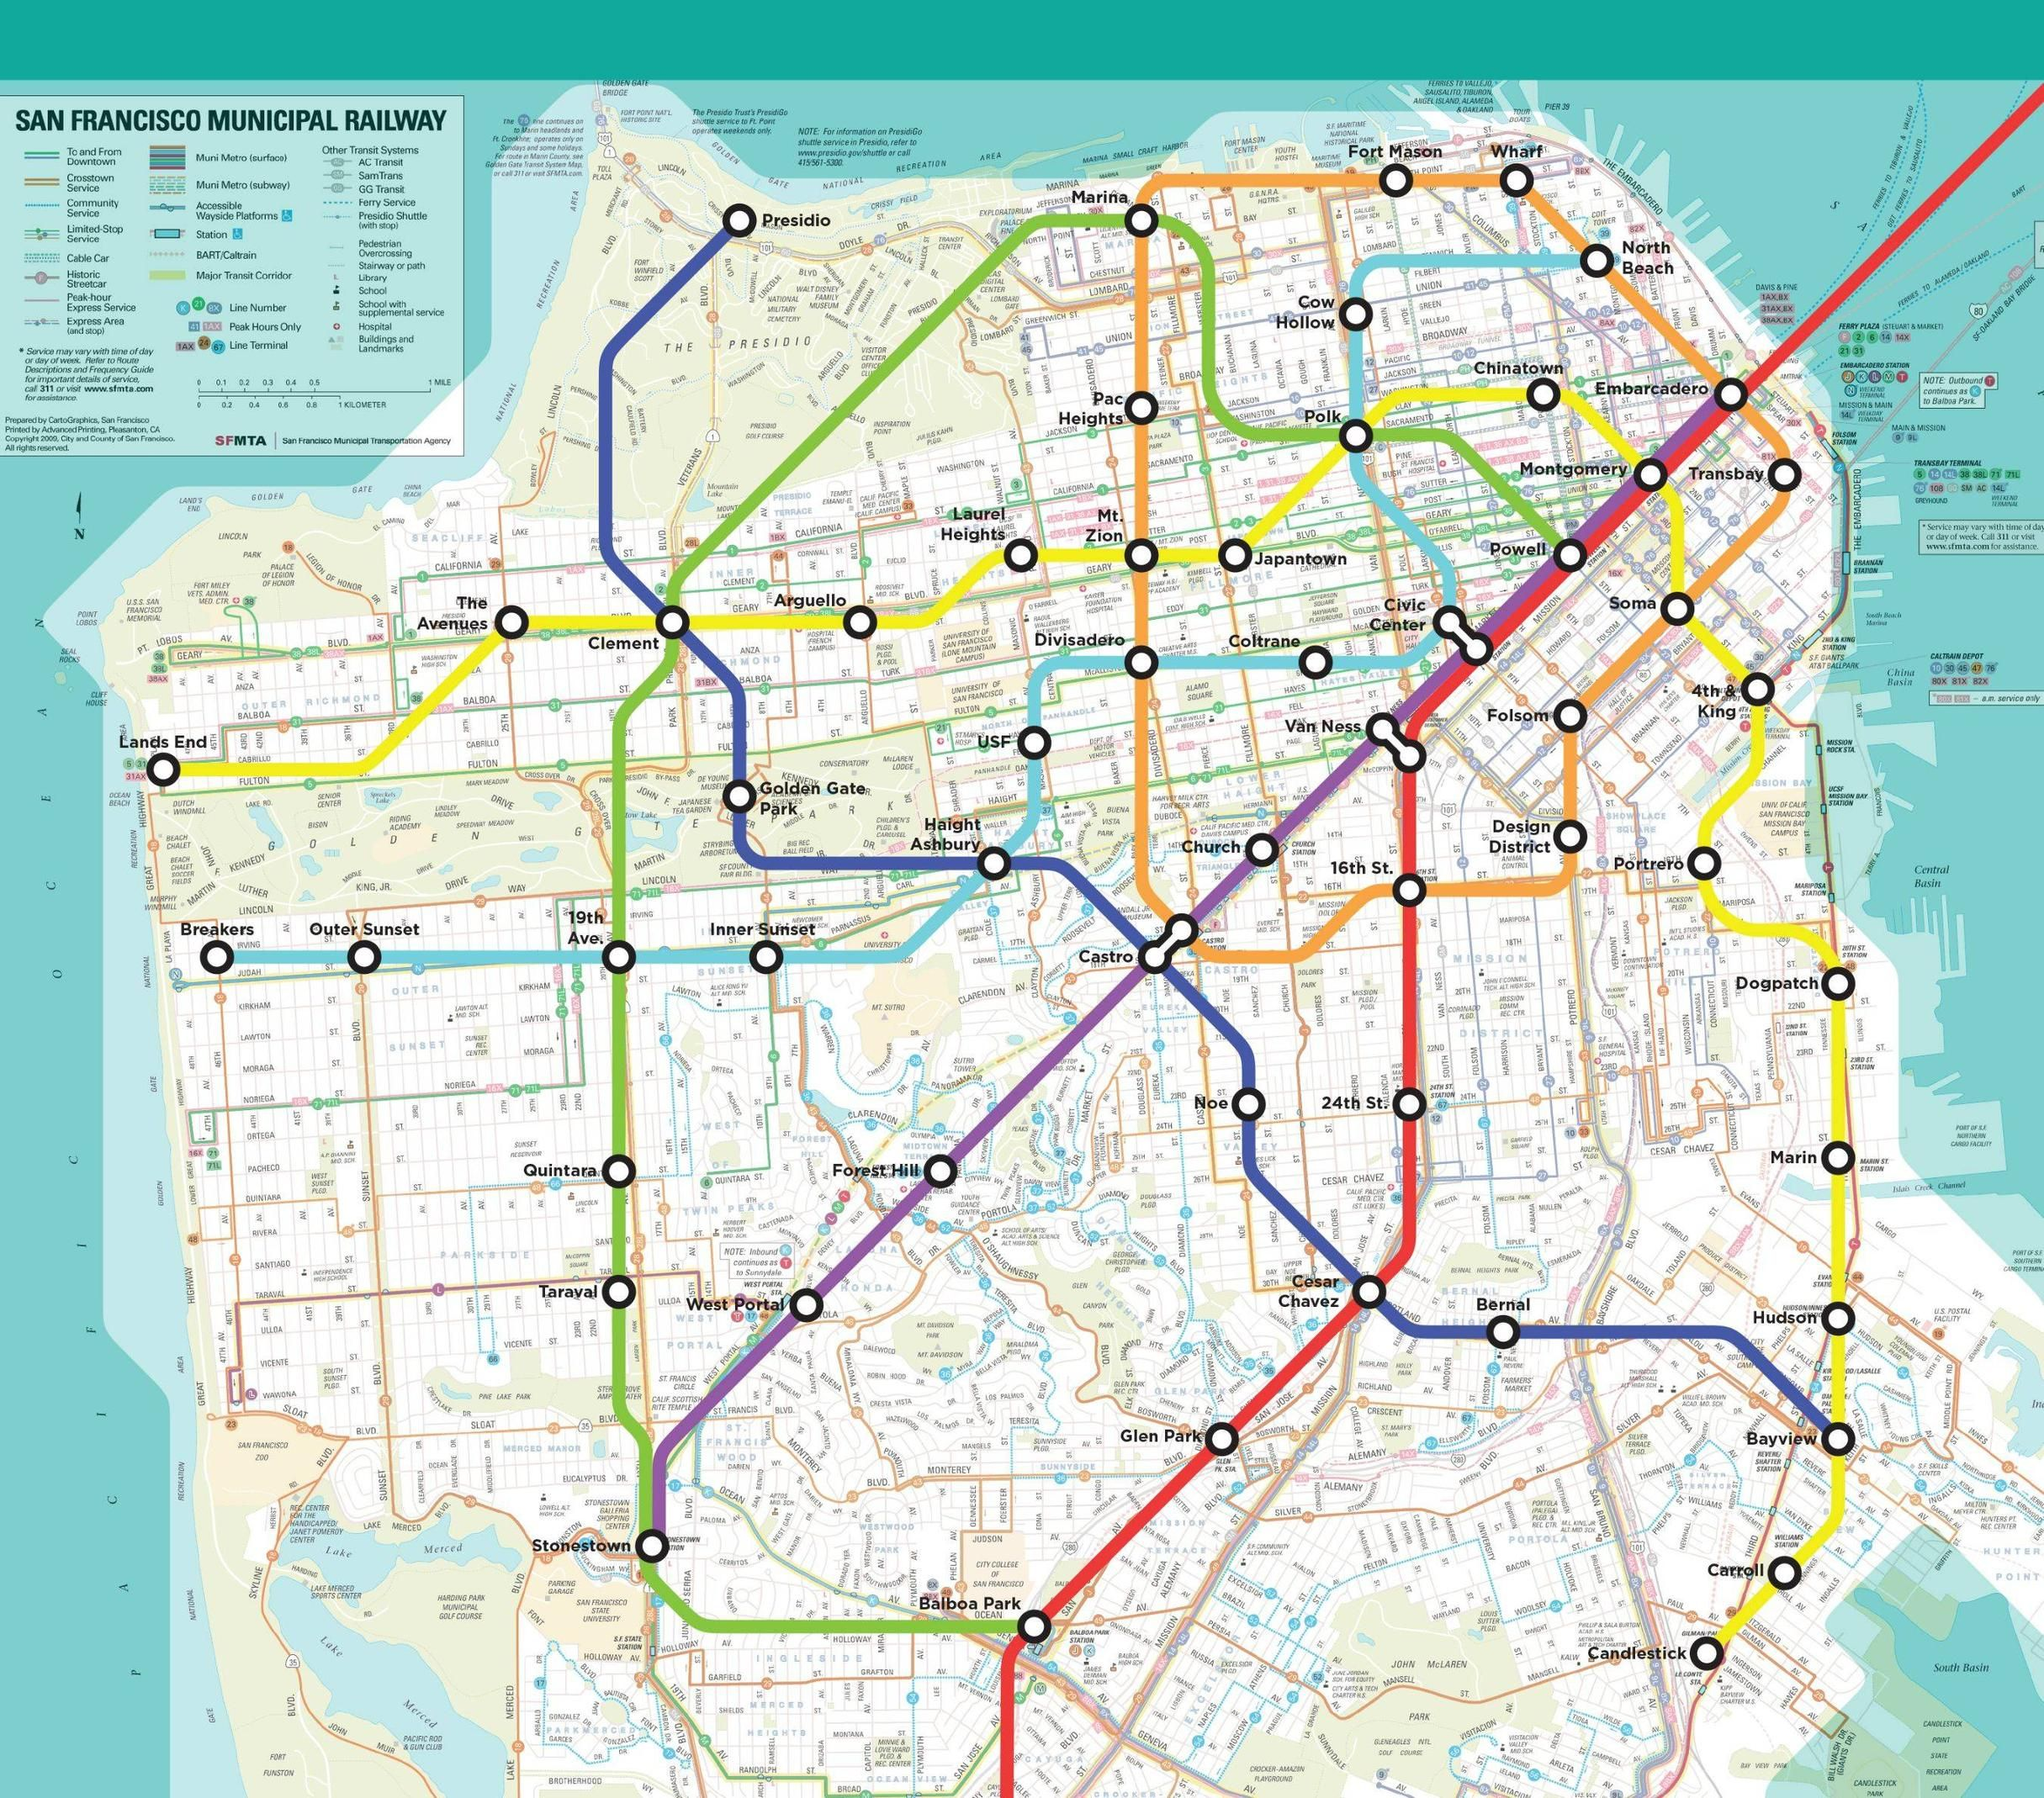 san francisco downtown map » Full HD MAPS Locations - Another World ...